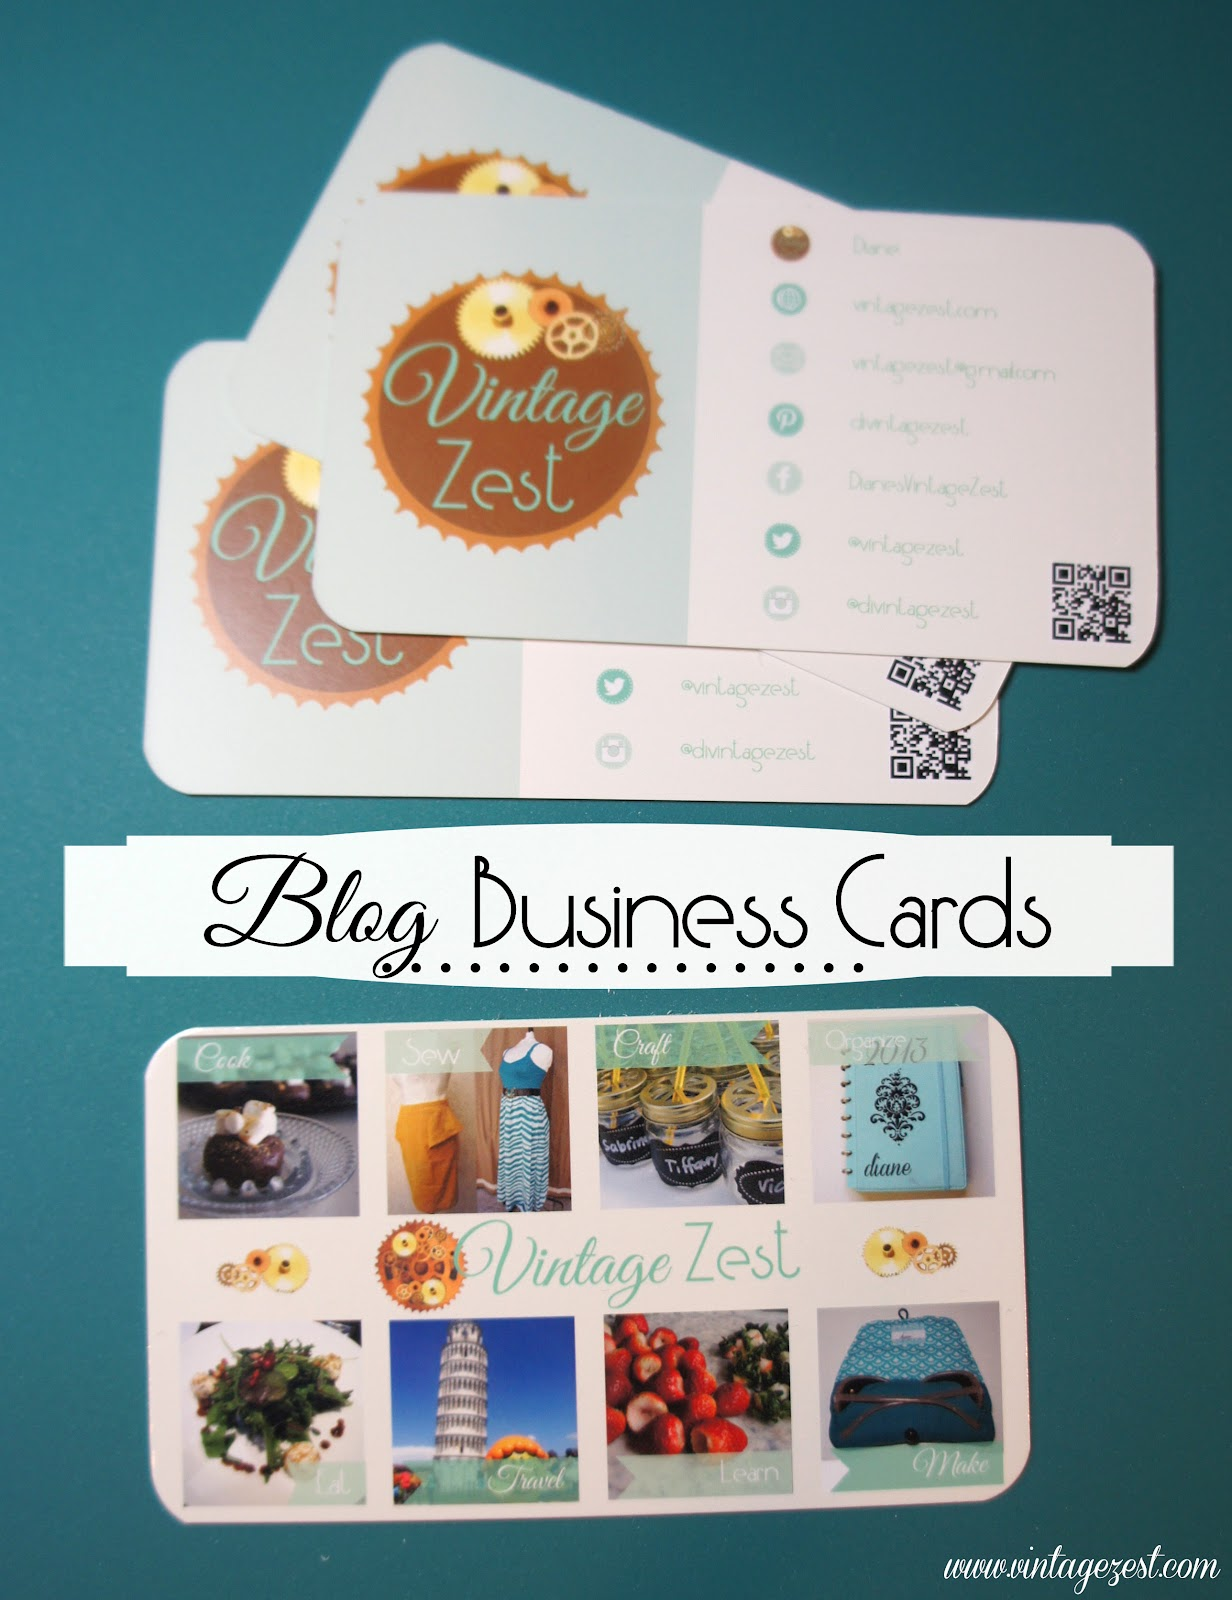 Blog business cards my new domain name dianes vintage zest my new business cards i designed them from scratch and now that i have them in my hands i will most likely make a few changes to the next batch reheart Gallery